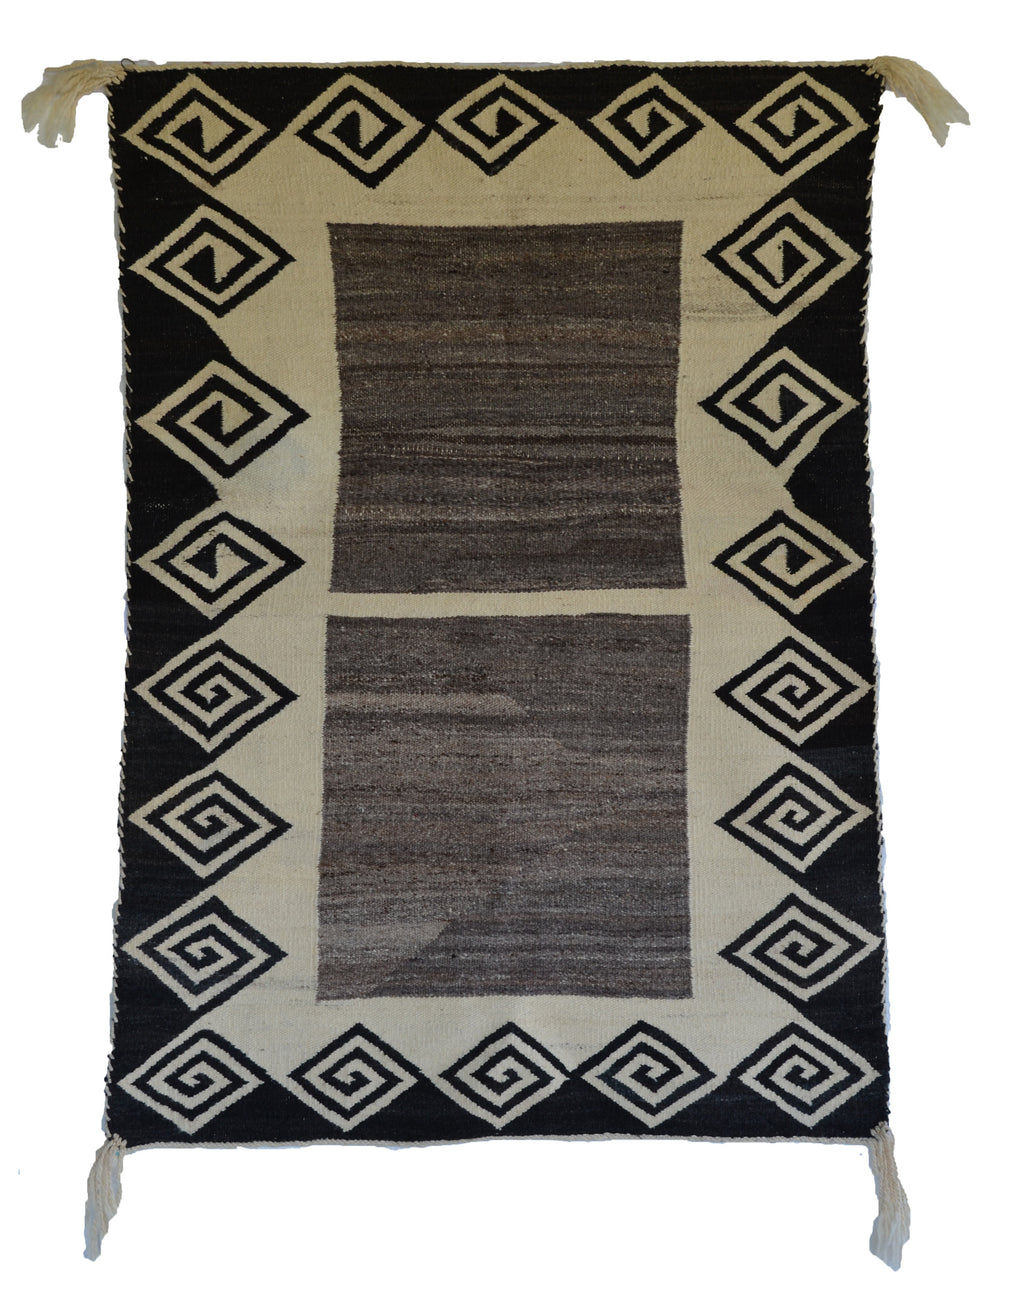 Double Saddle Blanket : Historic Navajo Weaving : JKC-1 : 34″ x 48″ - Getzwiller's Nizhoni Ranch Gallery